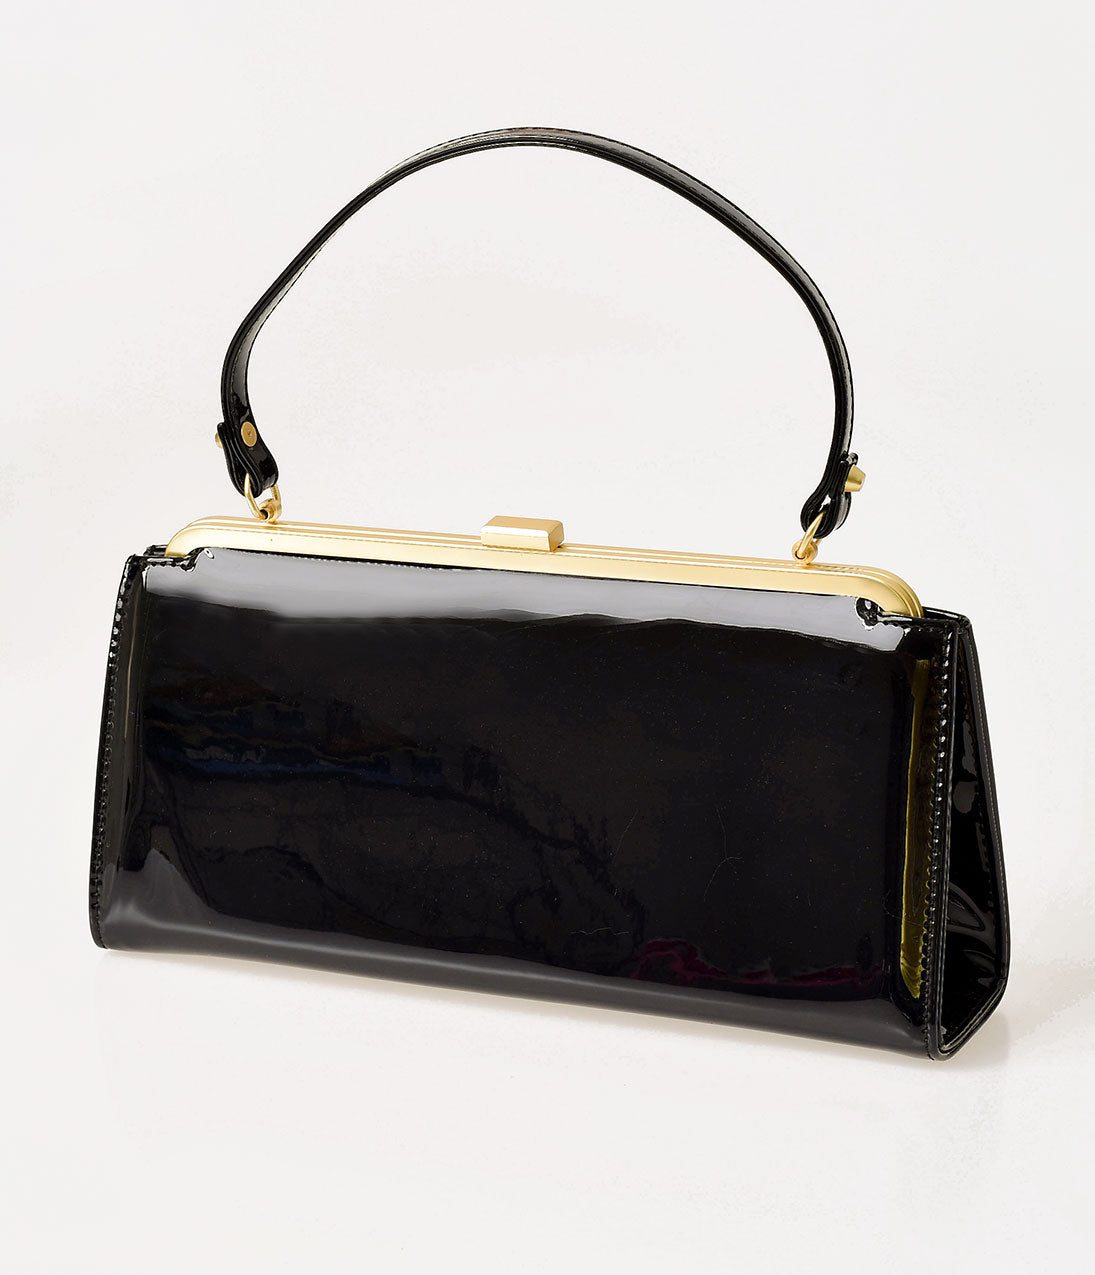 Vintage & Retro Handbags, Purses, Wallets, Bags Lola Ramona Black Patent Leatherette Betty Frame Handbag $92.00 AT vintagedancer.com